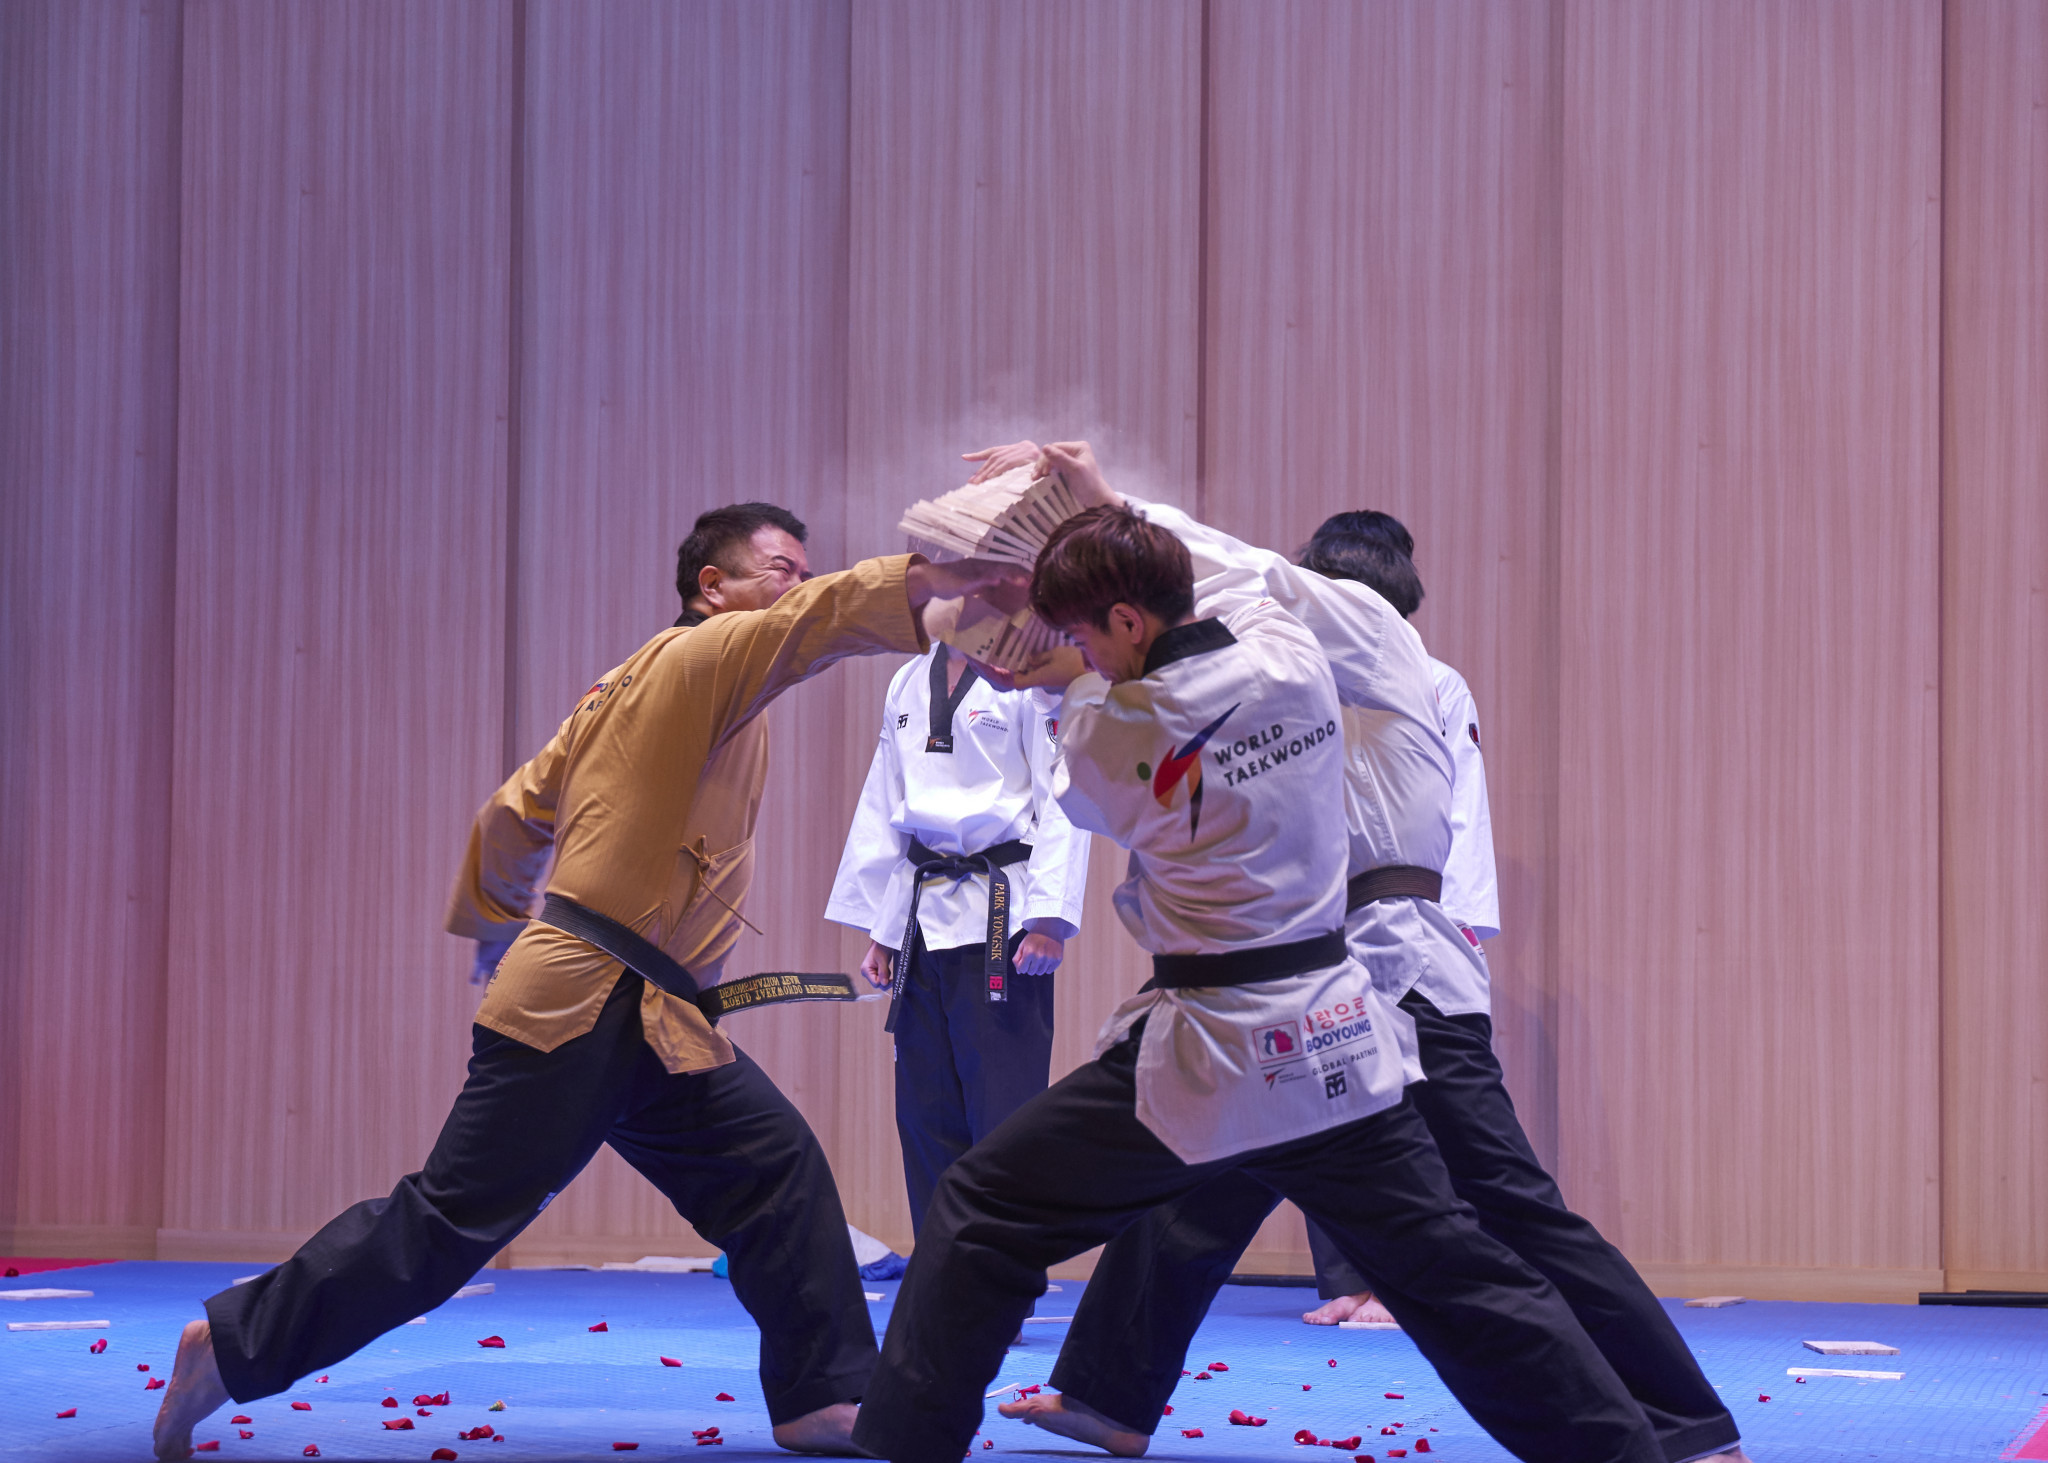 Punching and kicking planks of wood formed a key part of the demonstration ©World Taekwondo